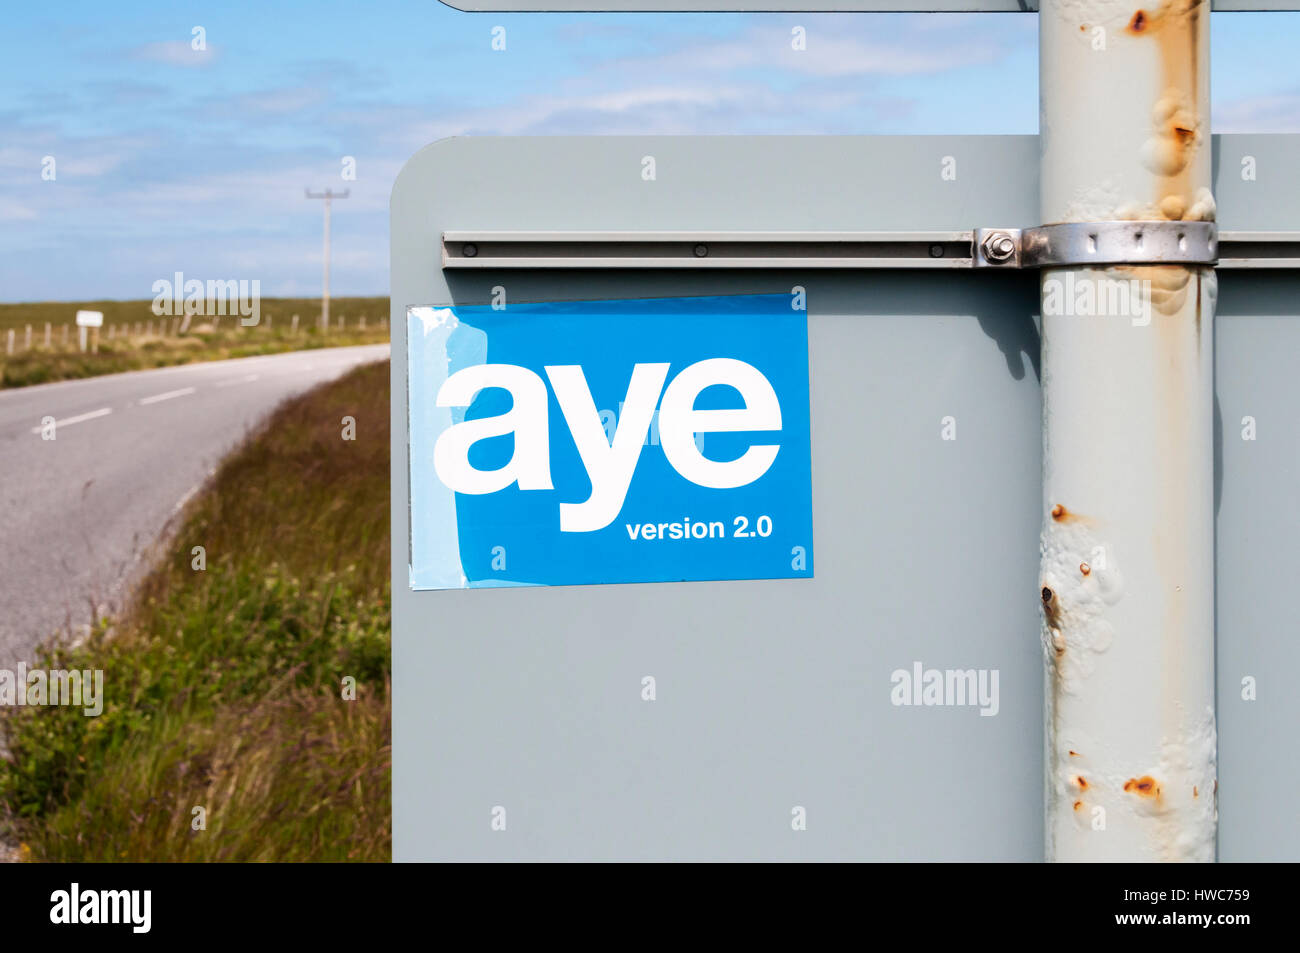 Aye version 2.0 sticker in Scotland supports a second Scottish referendum on independence. - Stock Image